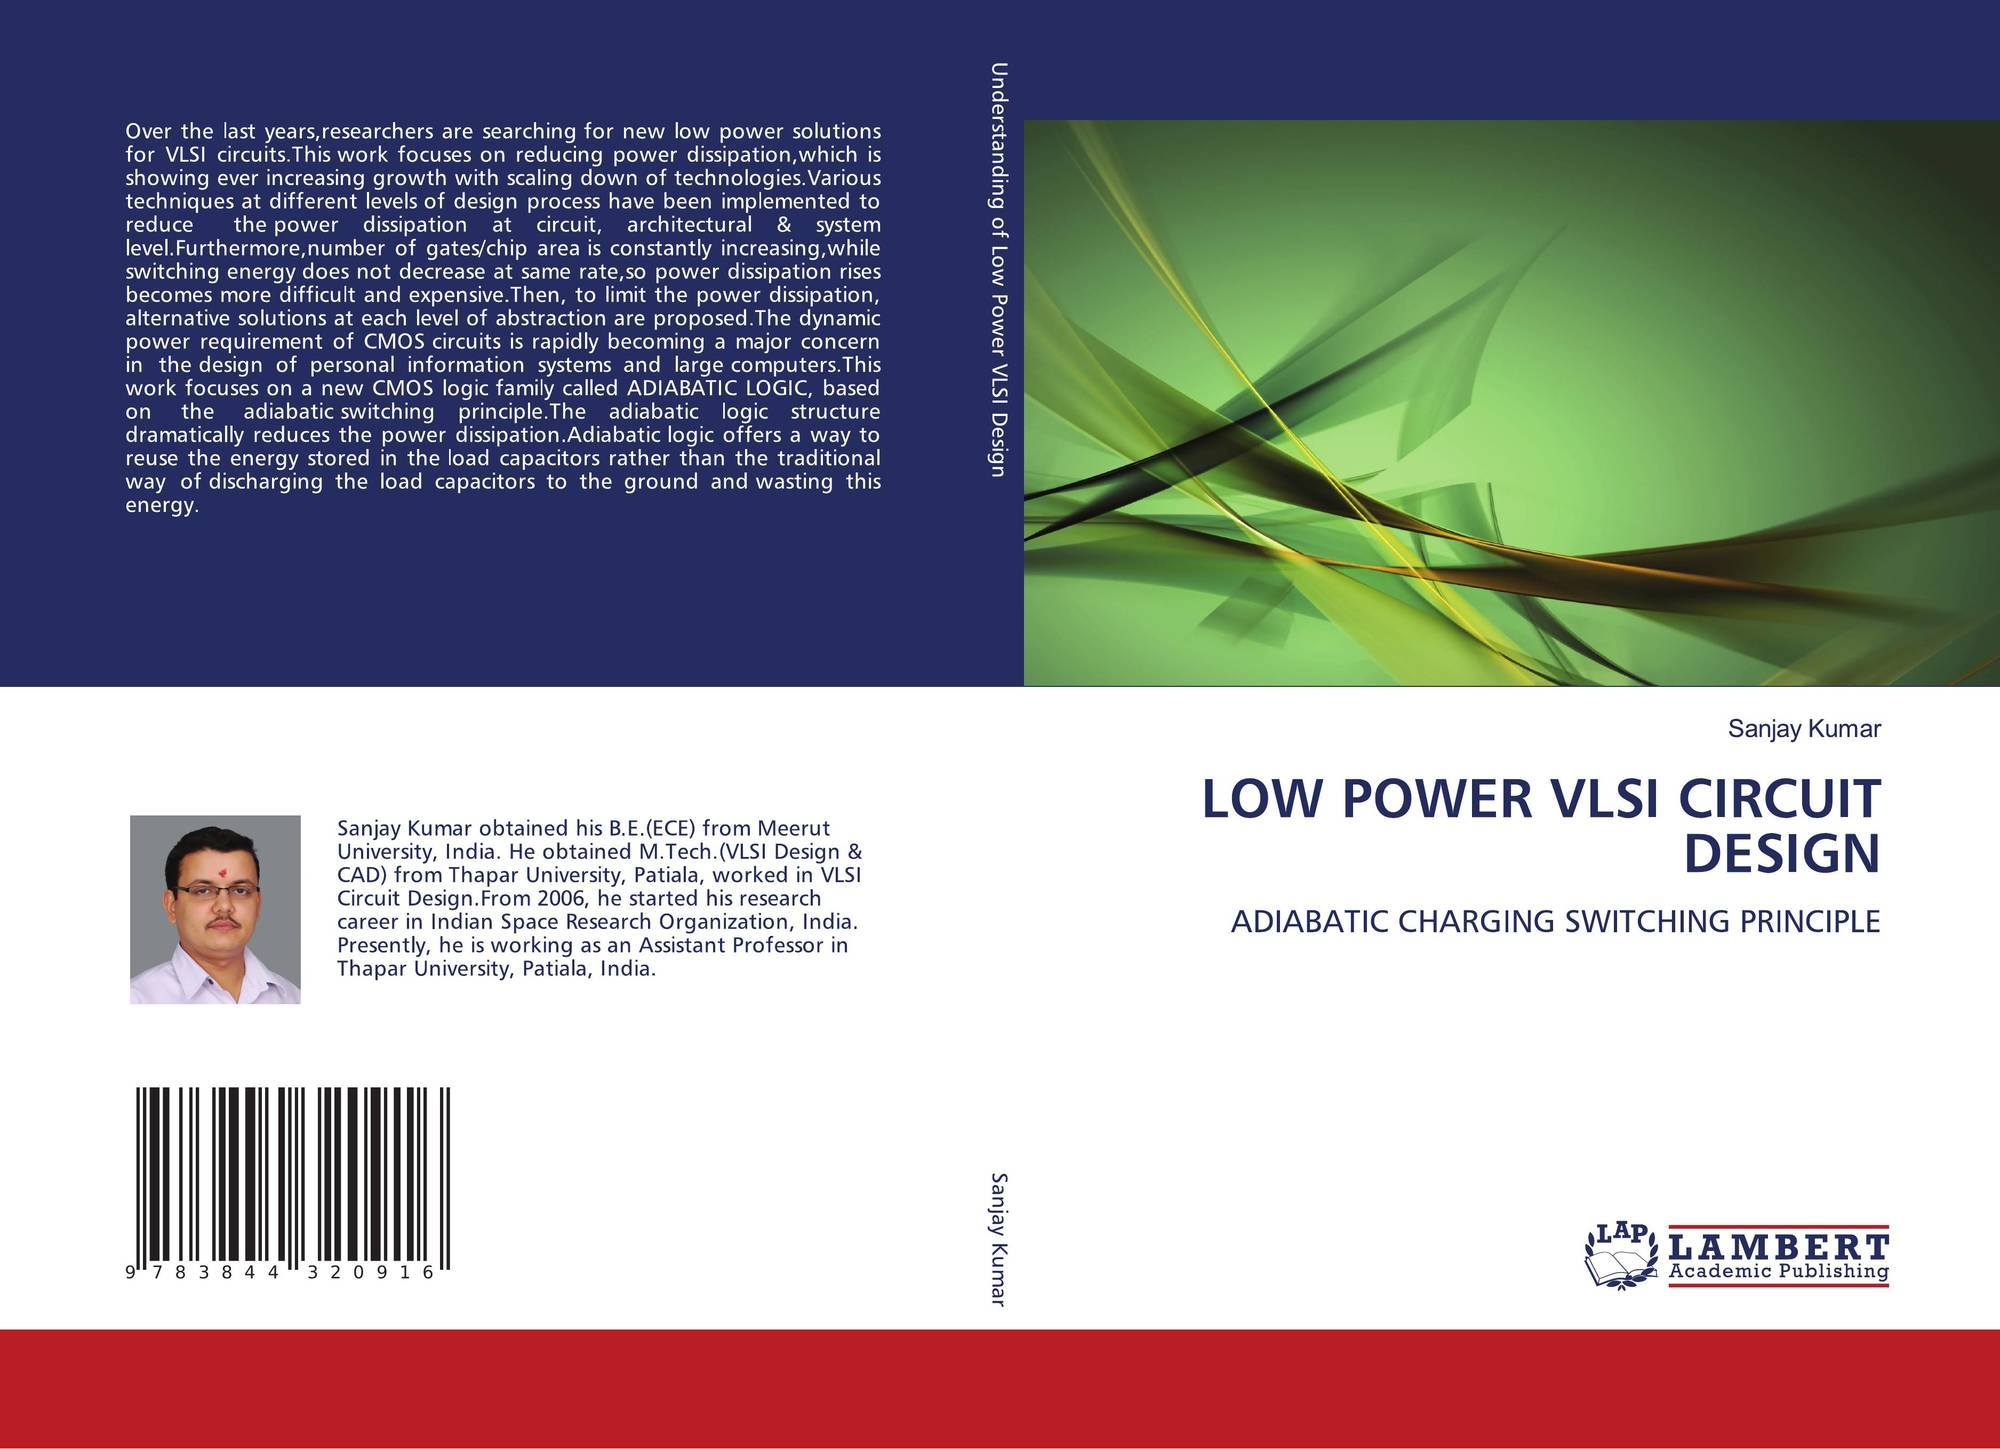 vlsi and low power vlsi research paper 2014